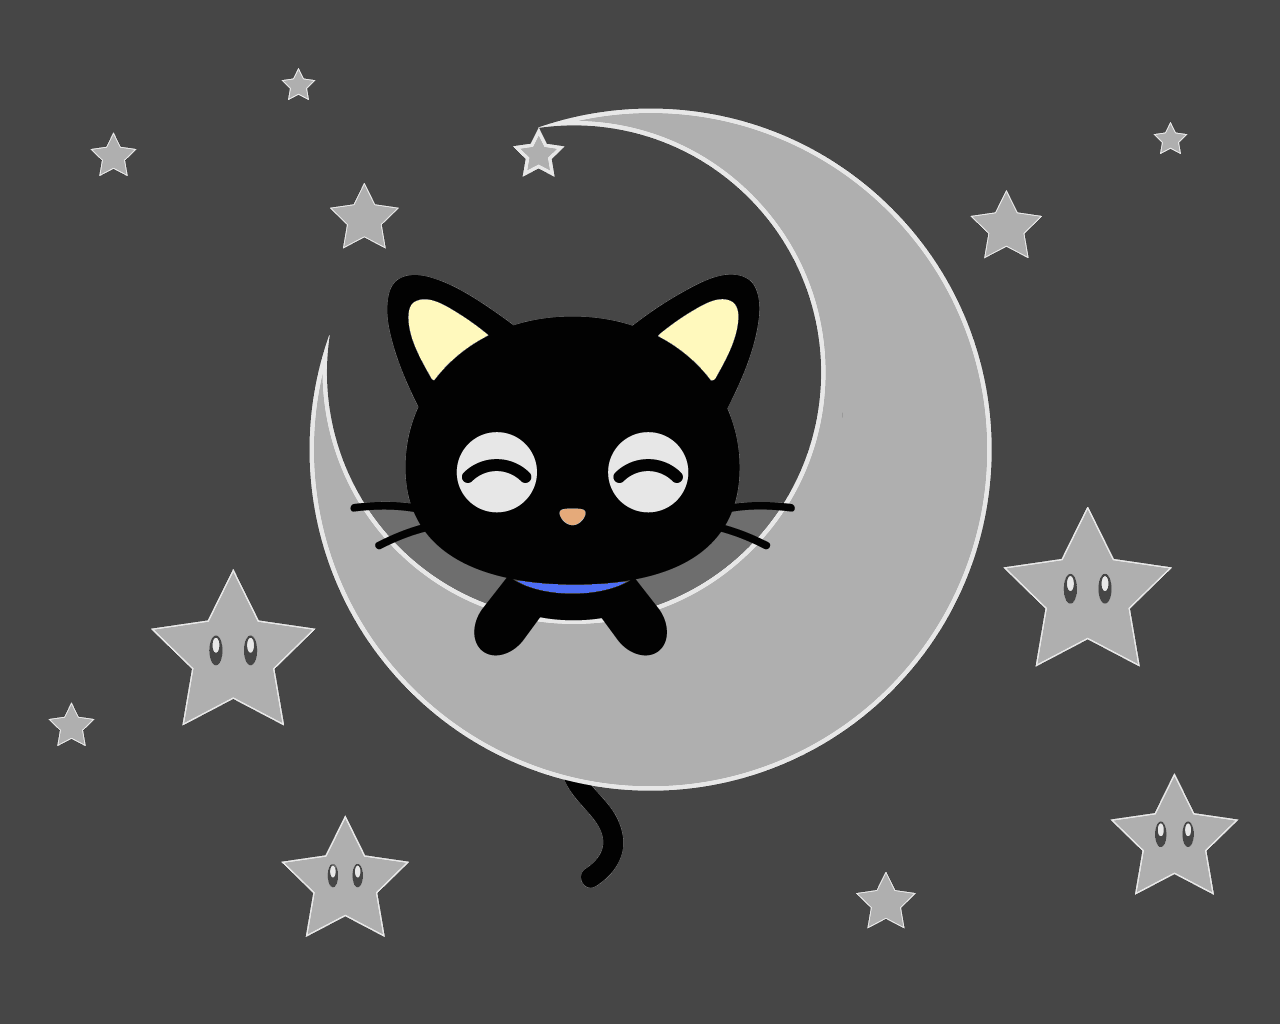 Wall Stickers Black Chococat Images Chococat Wallpaper Hd Wallpaper And